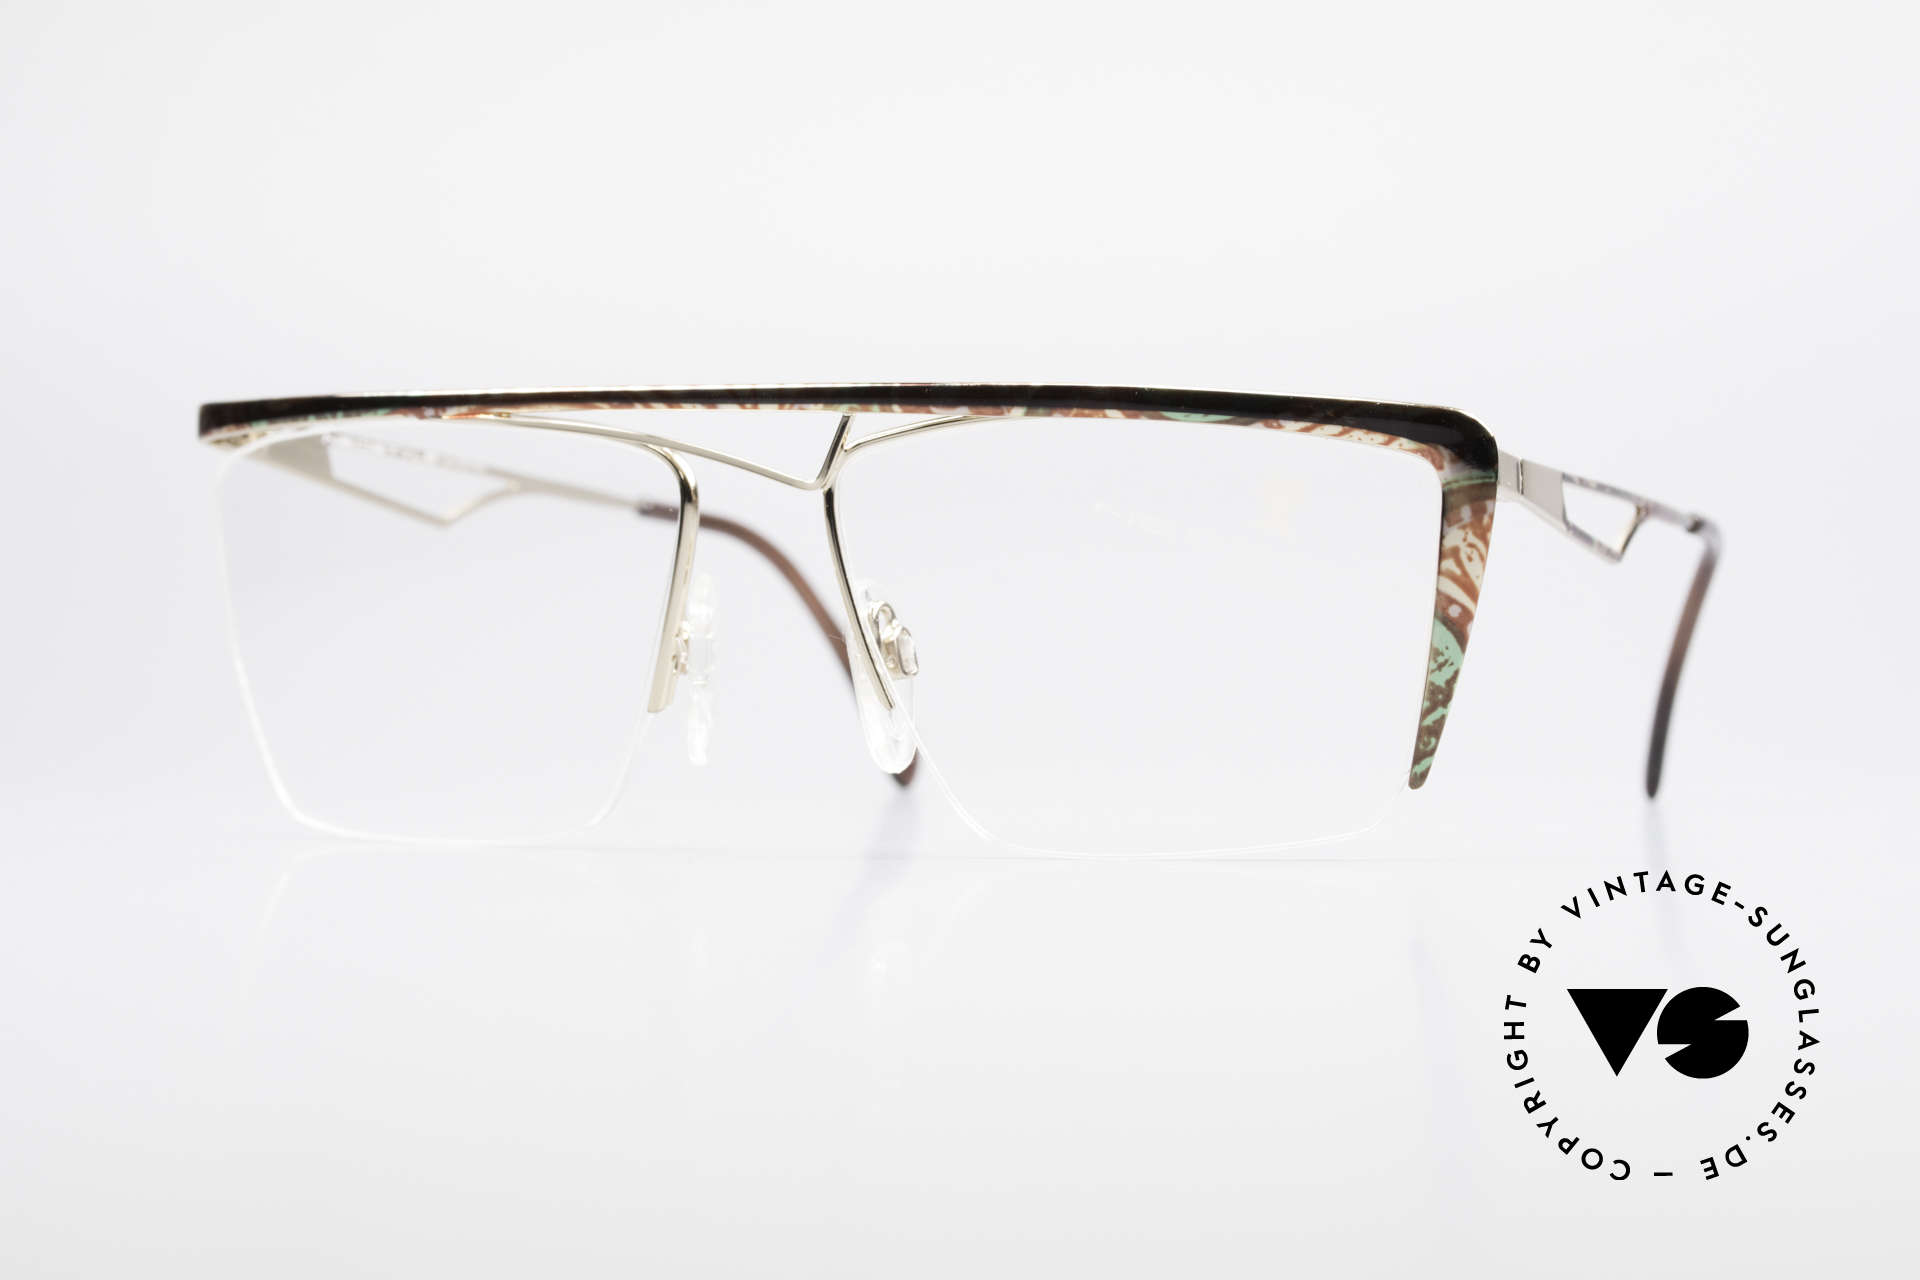 Neostyle Jet 201 Vintage 80's Nylor Frame, striking Neostyle eyeglass-frame from 1989/90, Made for Men and Women